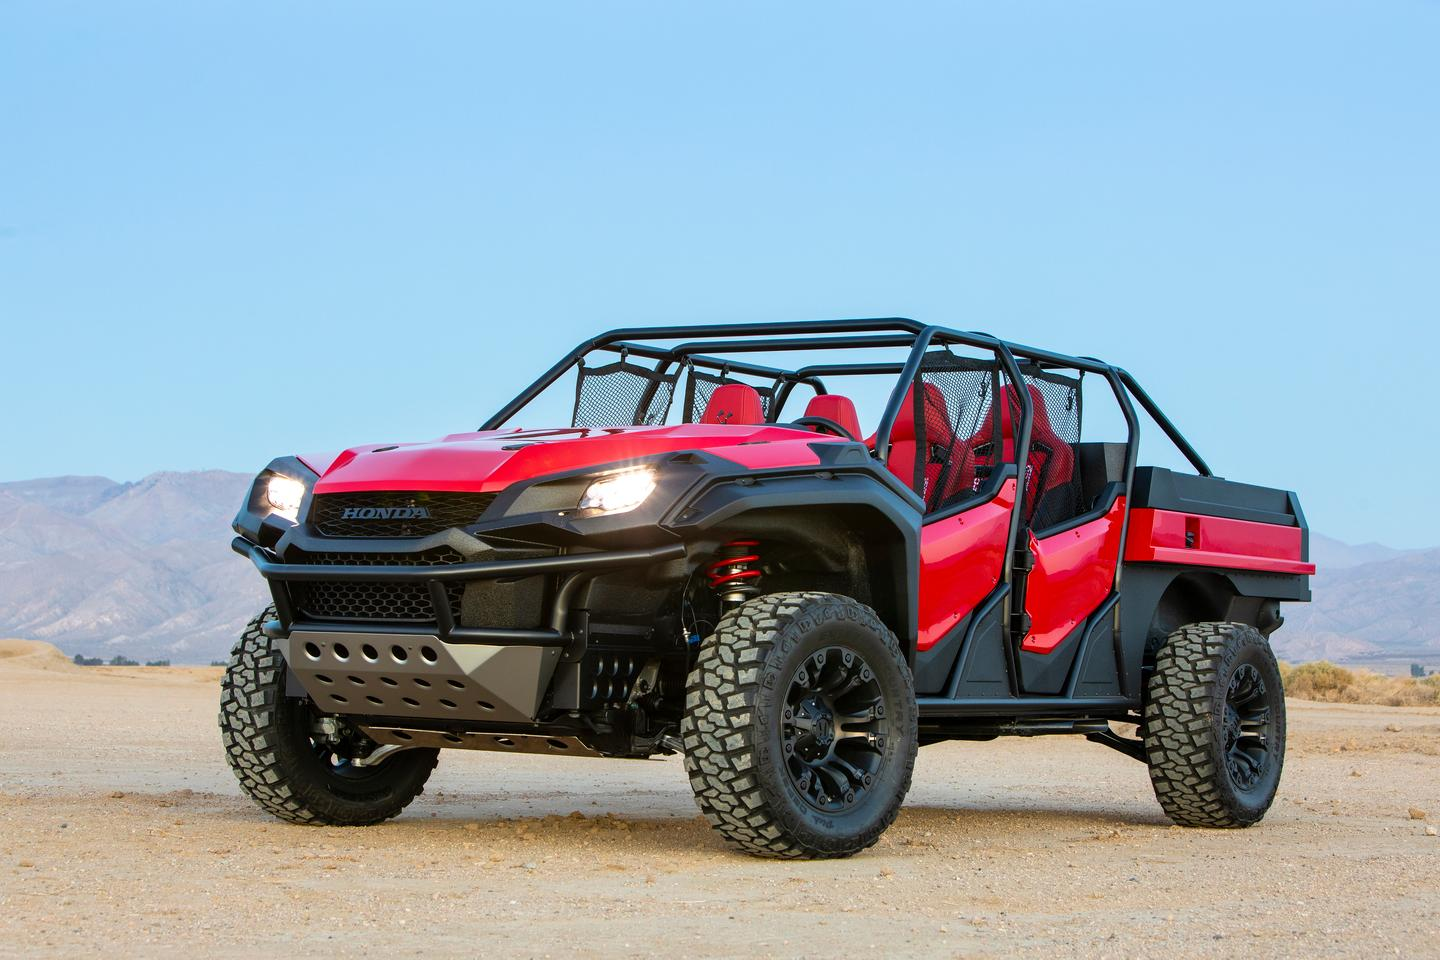 Honda has debuted the Rugged Open Air Vehicle concept at SEMA 2018